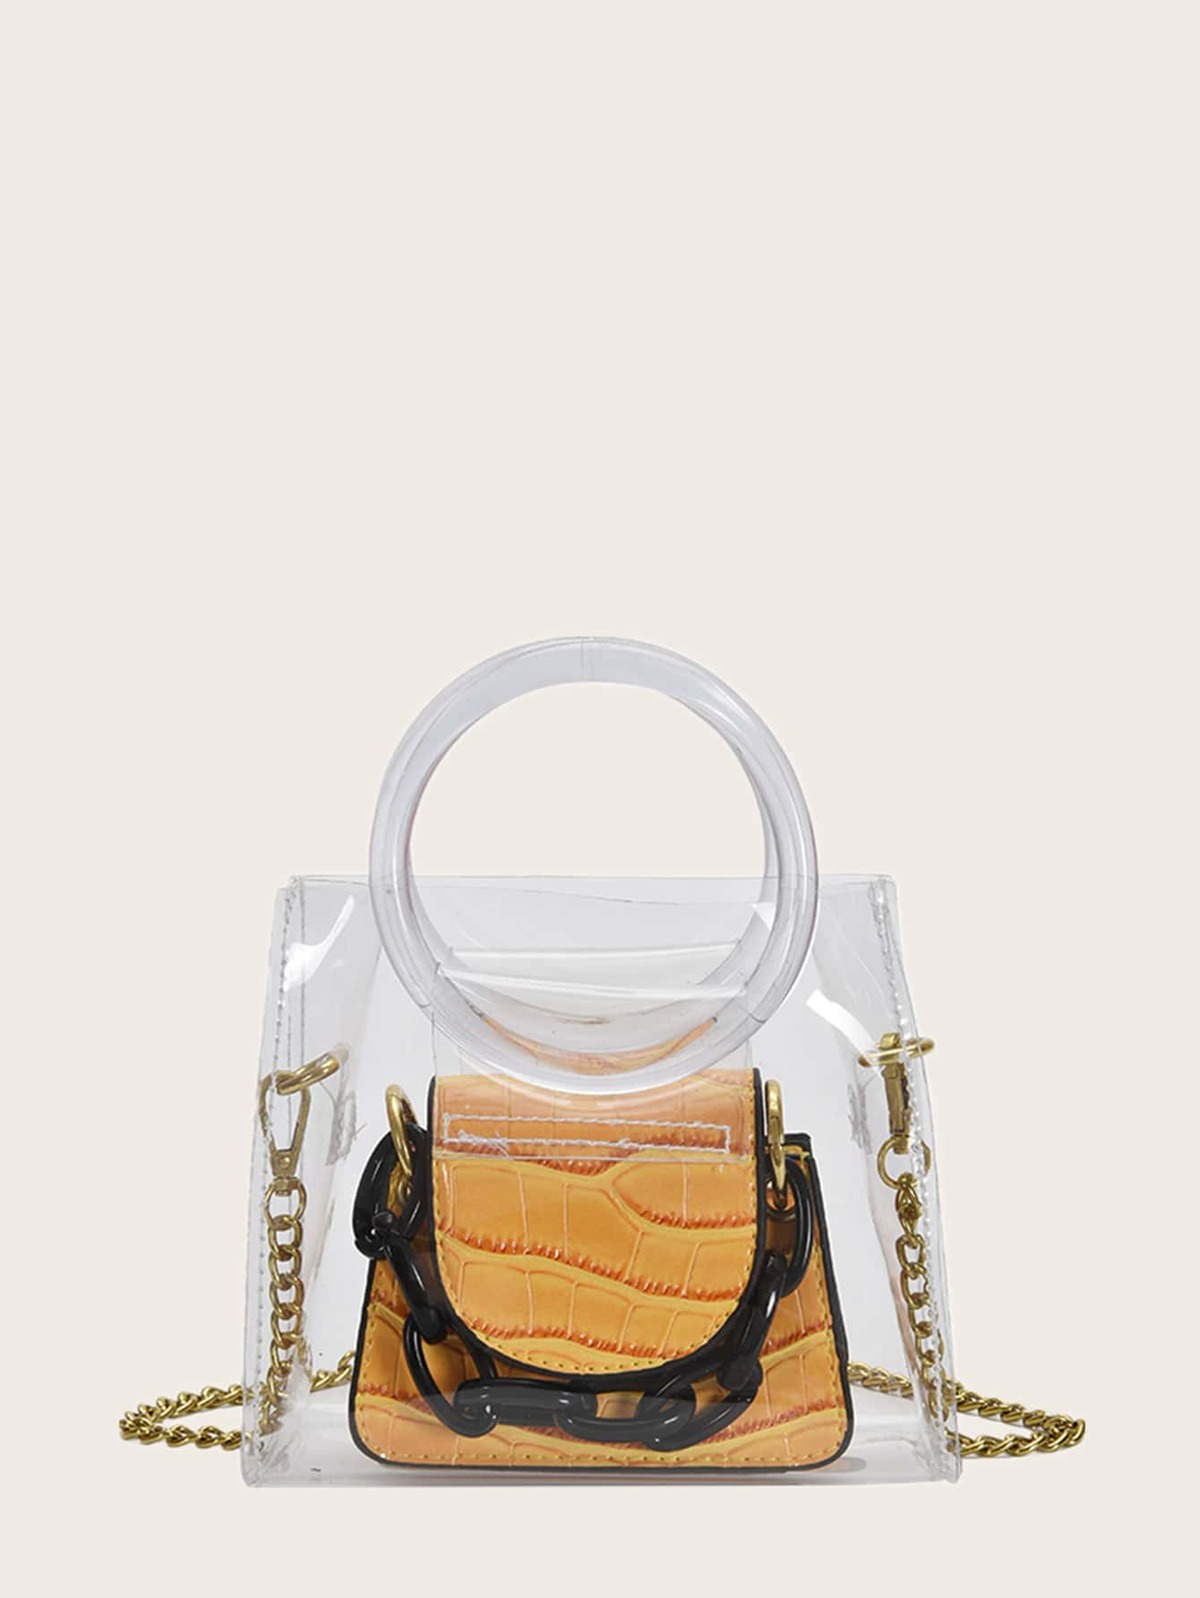 Clear Crossbody Bag With Croc Embossed Satchel Bag